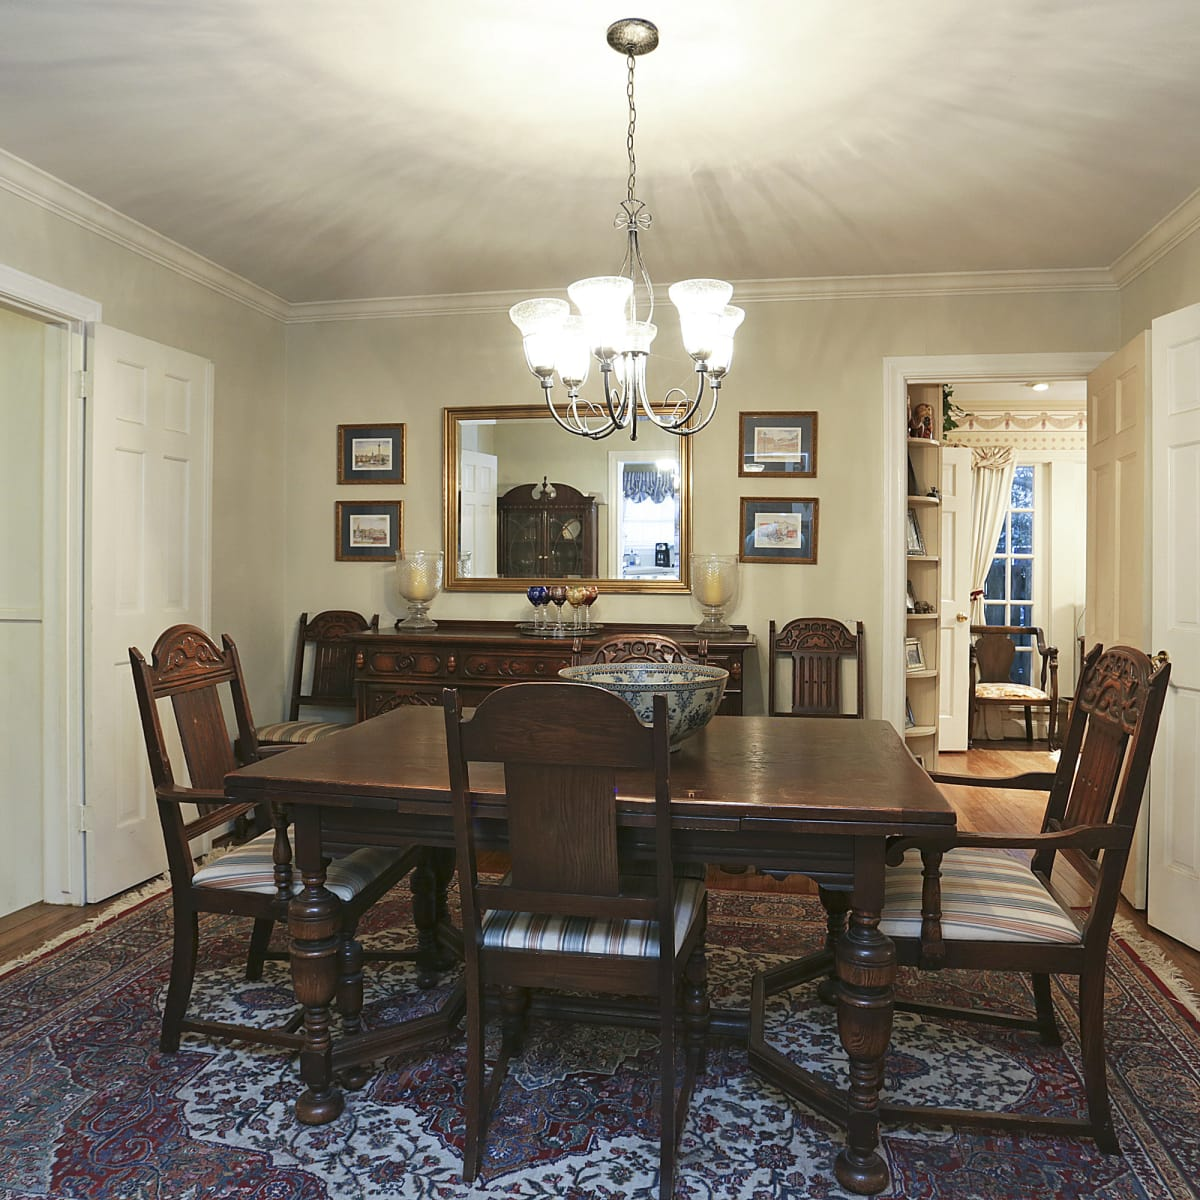 2424 Locke Lane in Houston house for sale dining room